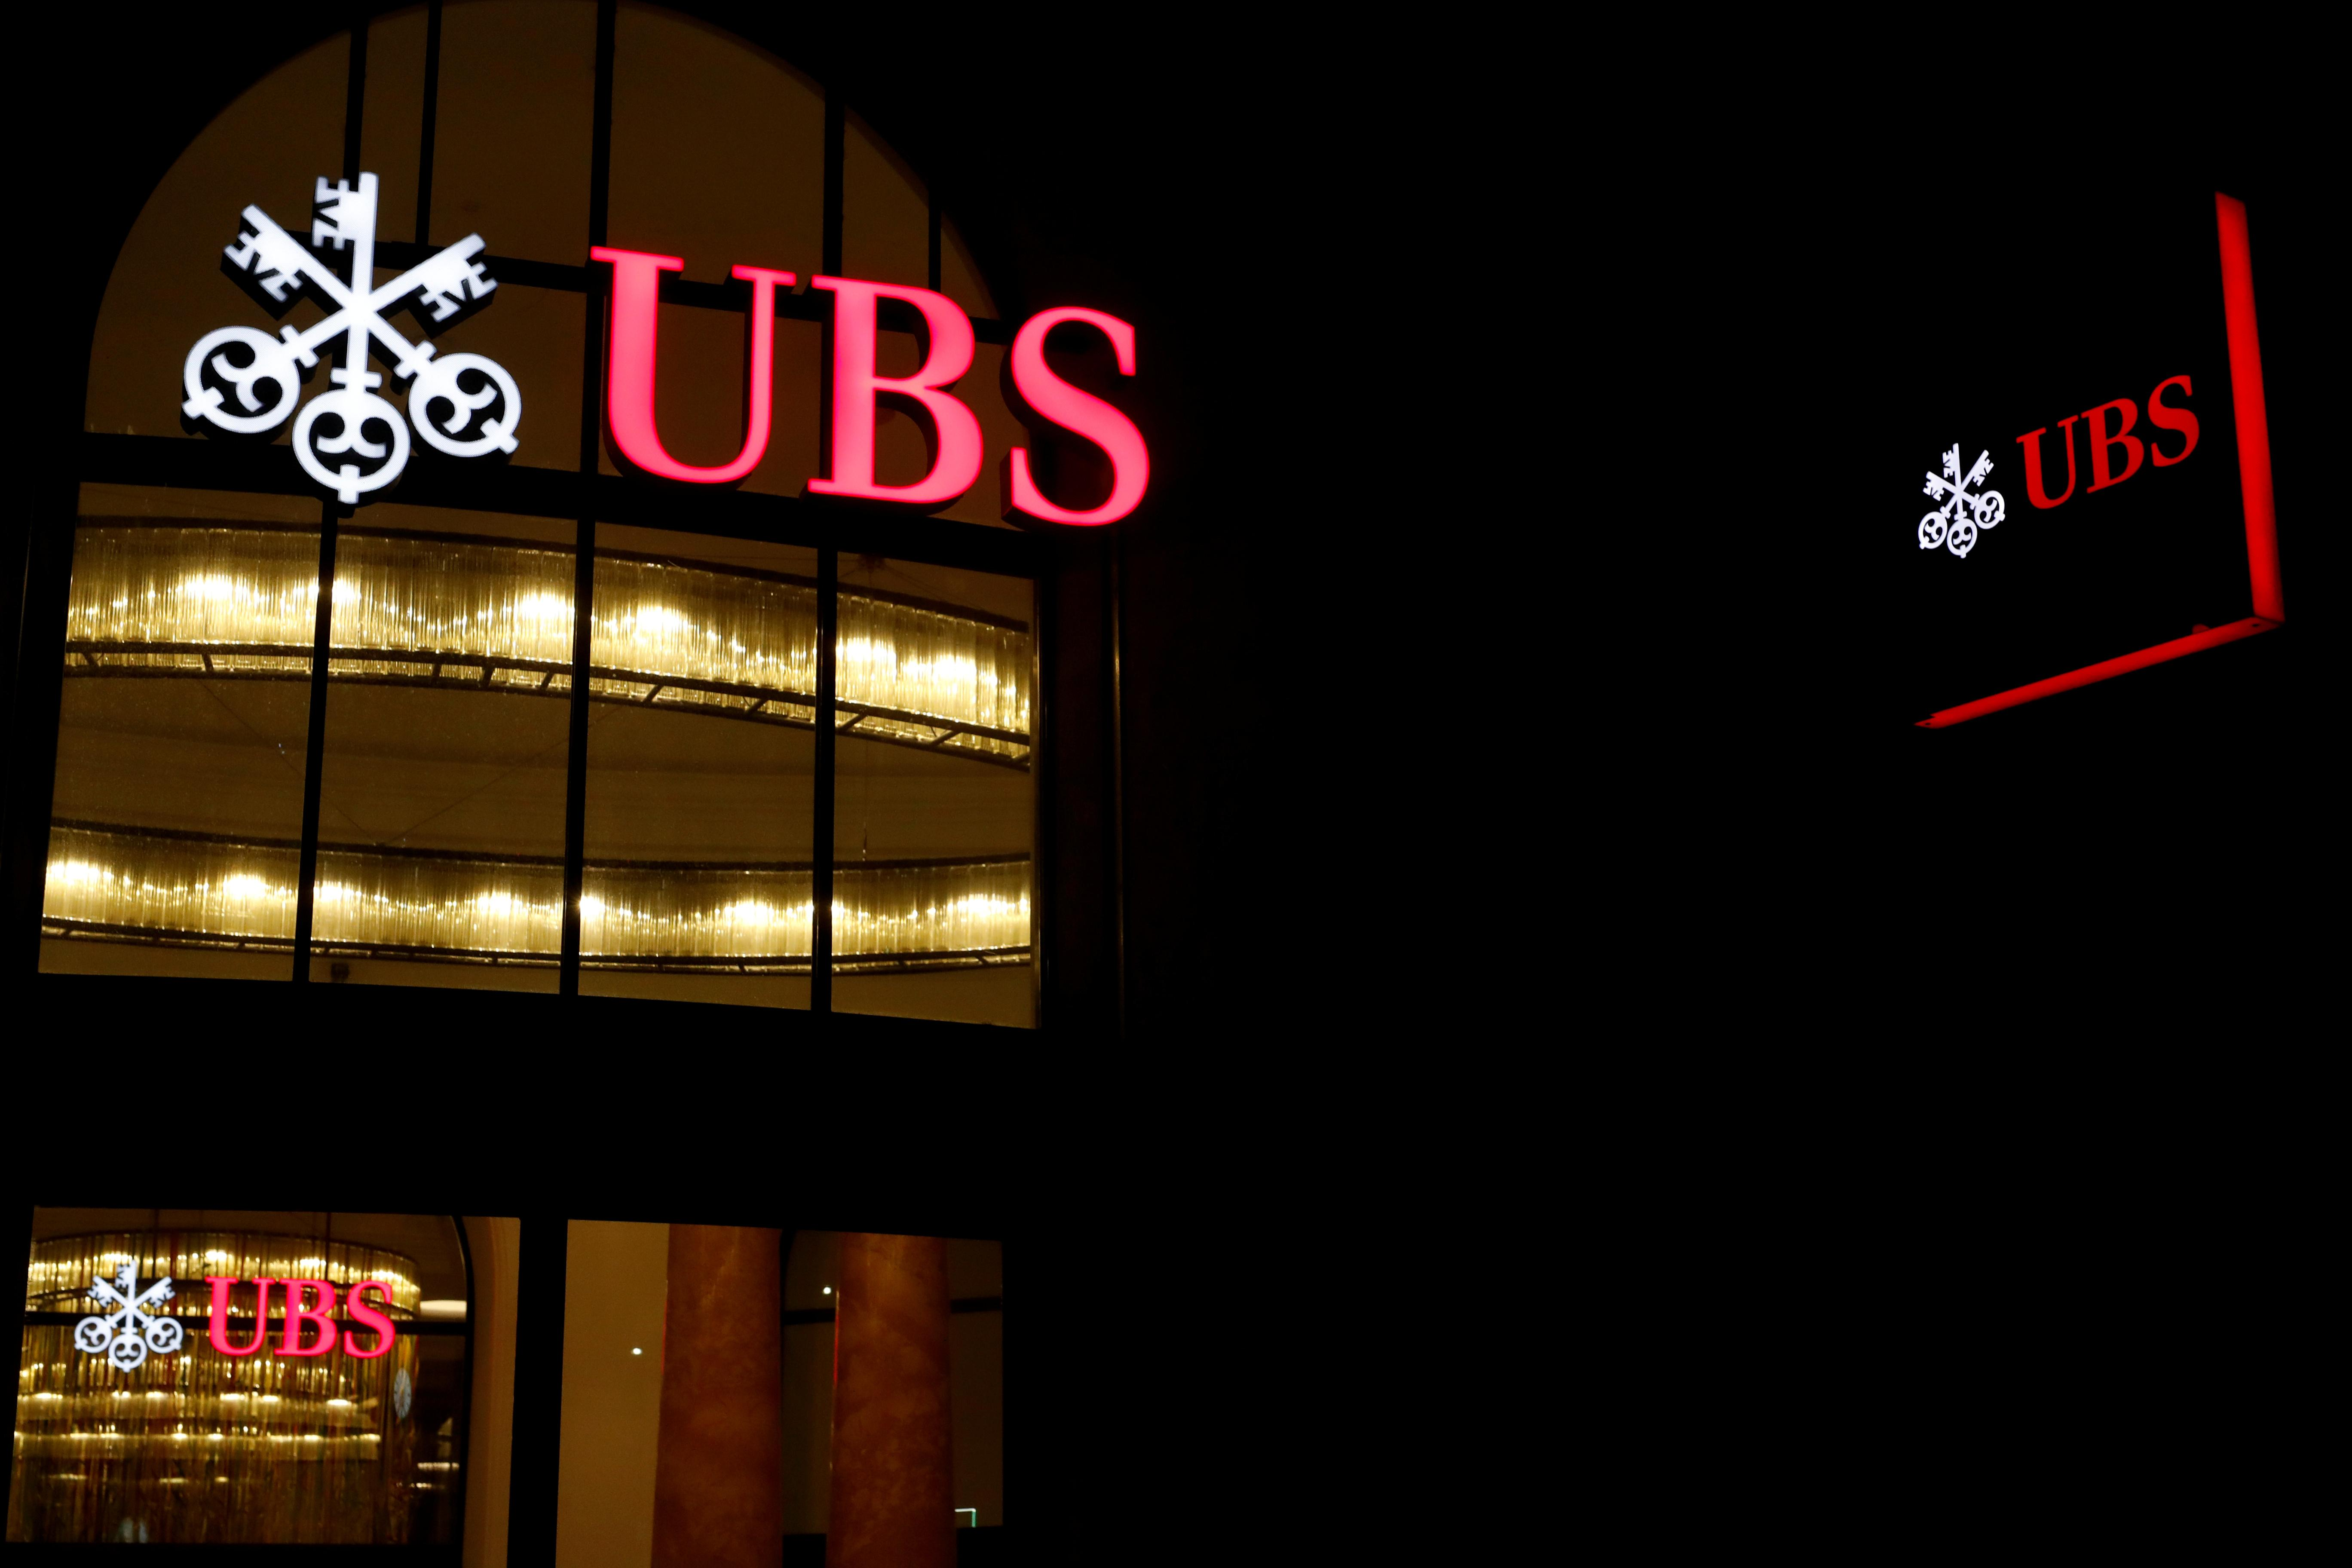 UBS defies Swiss dividend freeze call with $2.6 billion payout plan